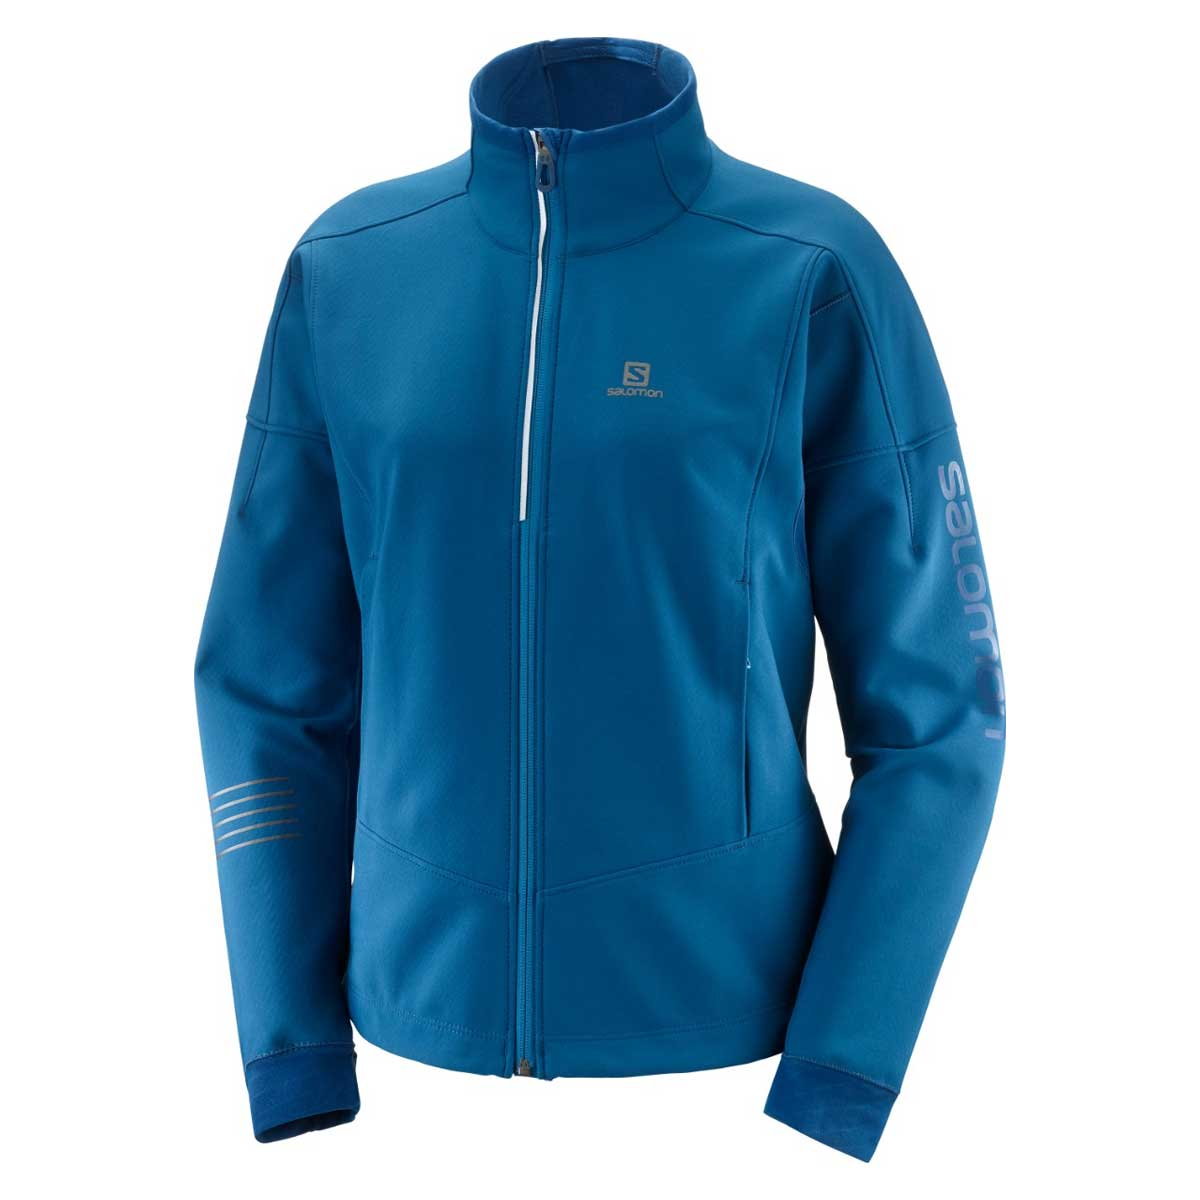 Salomon Women's Lightning Warm Softshell Jacket in Poseidon